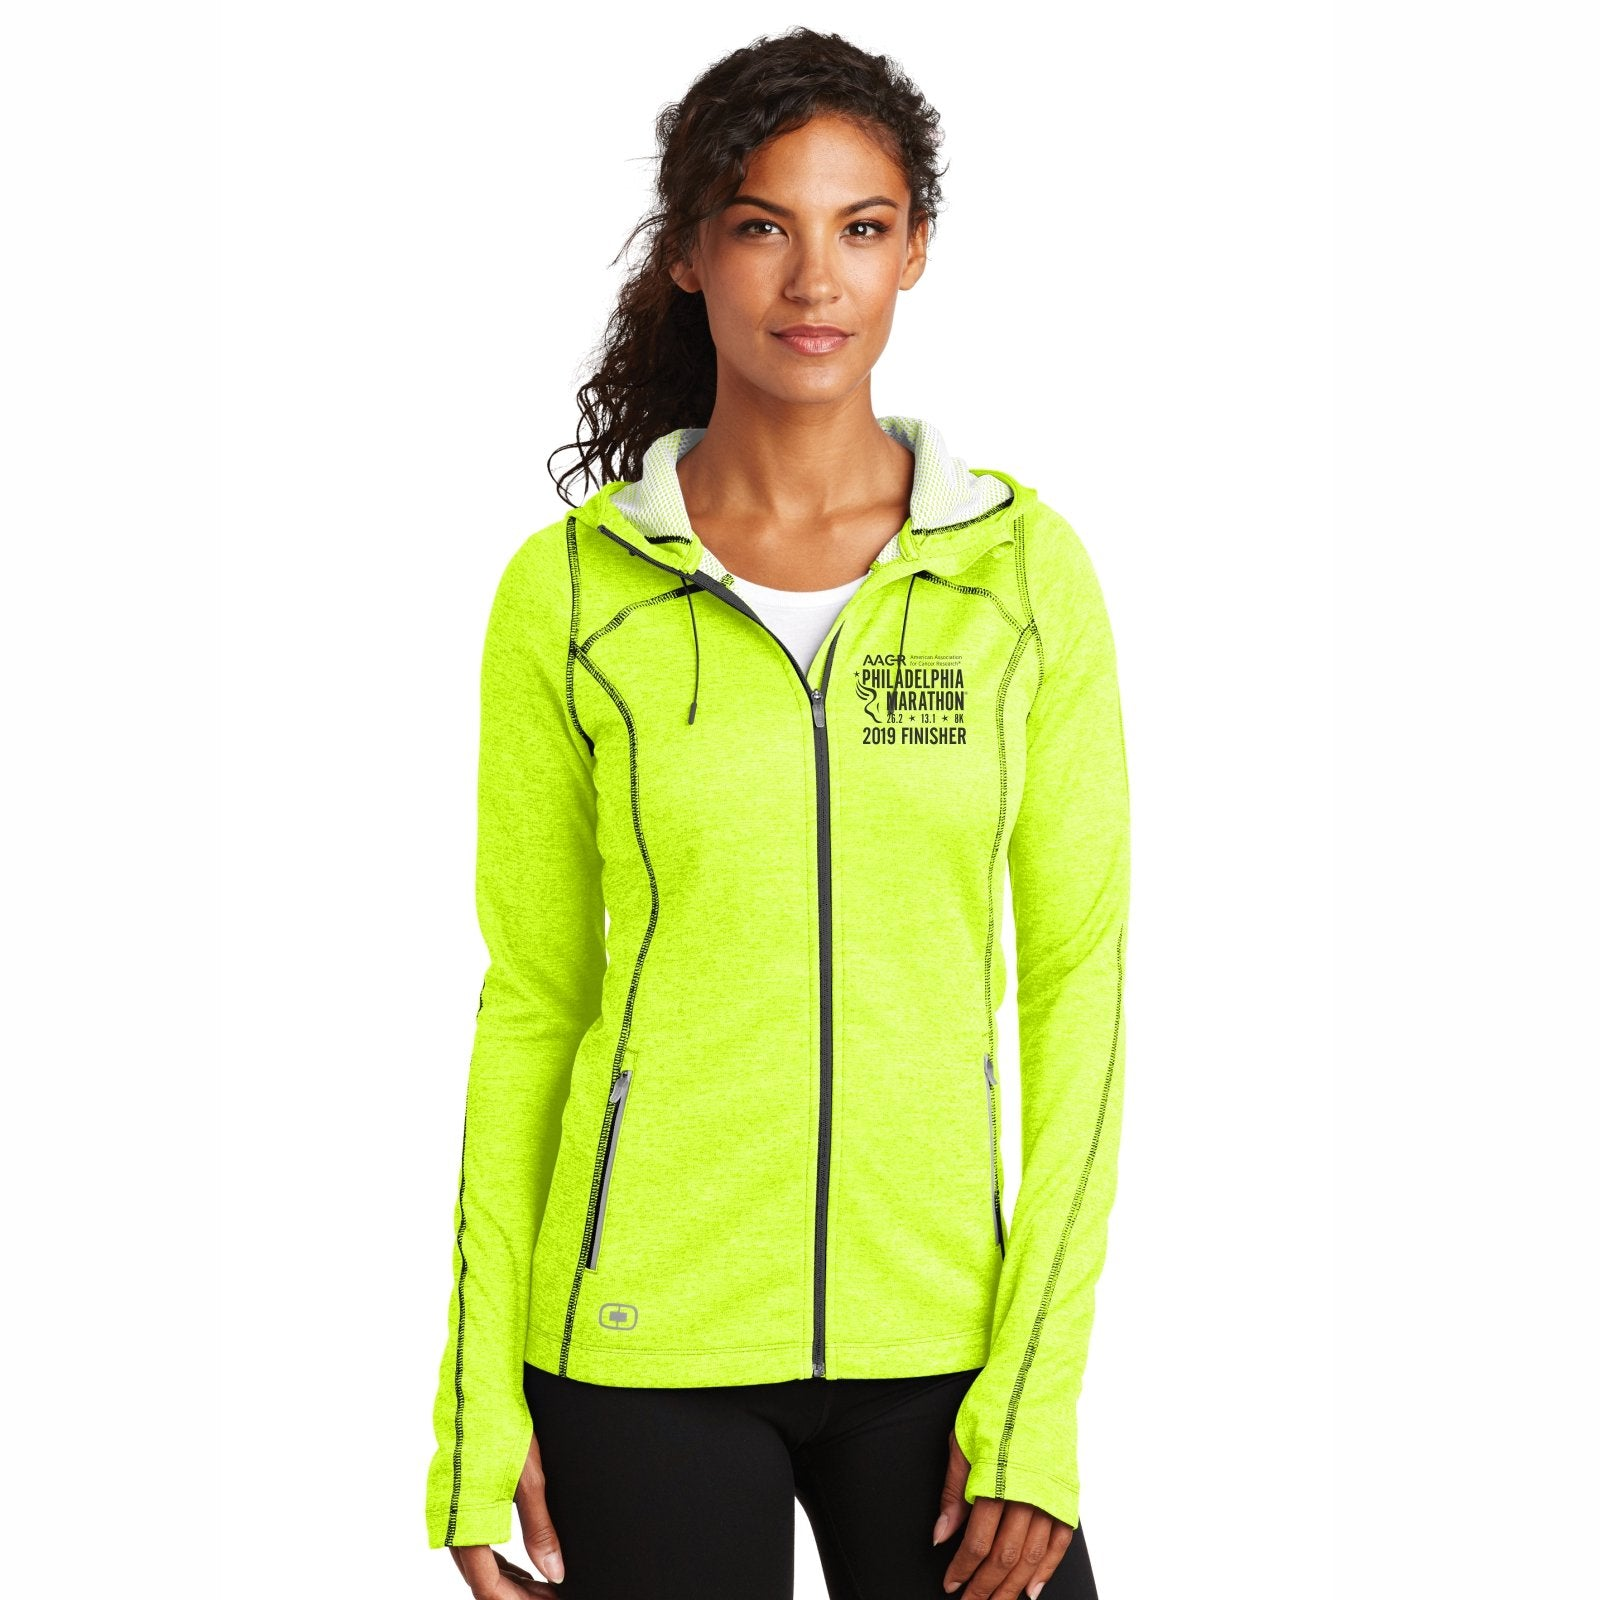 Women's Hooded Heathered Fleece Full Zip Jacket -Pace Yellow 'Finisher 2019 Embr. Design' - AACR Philadelphia Marathon